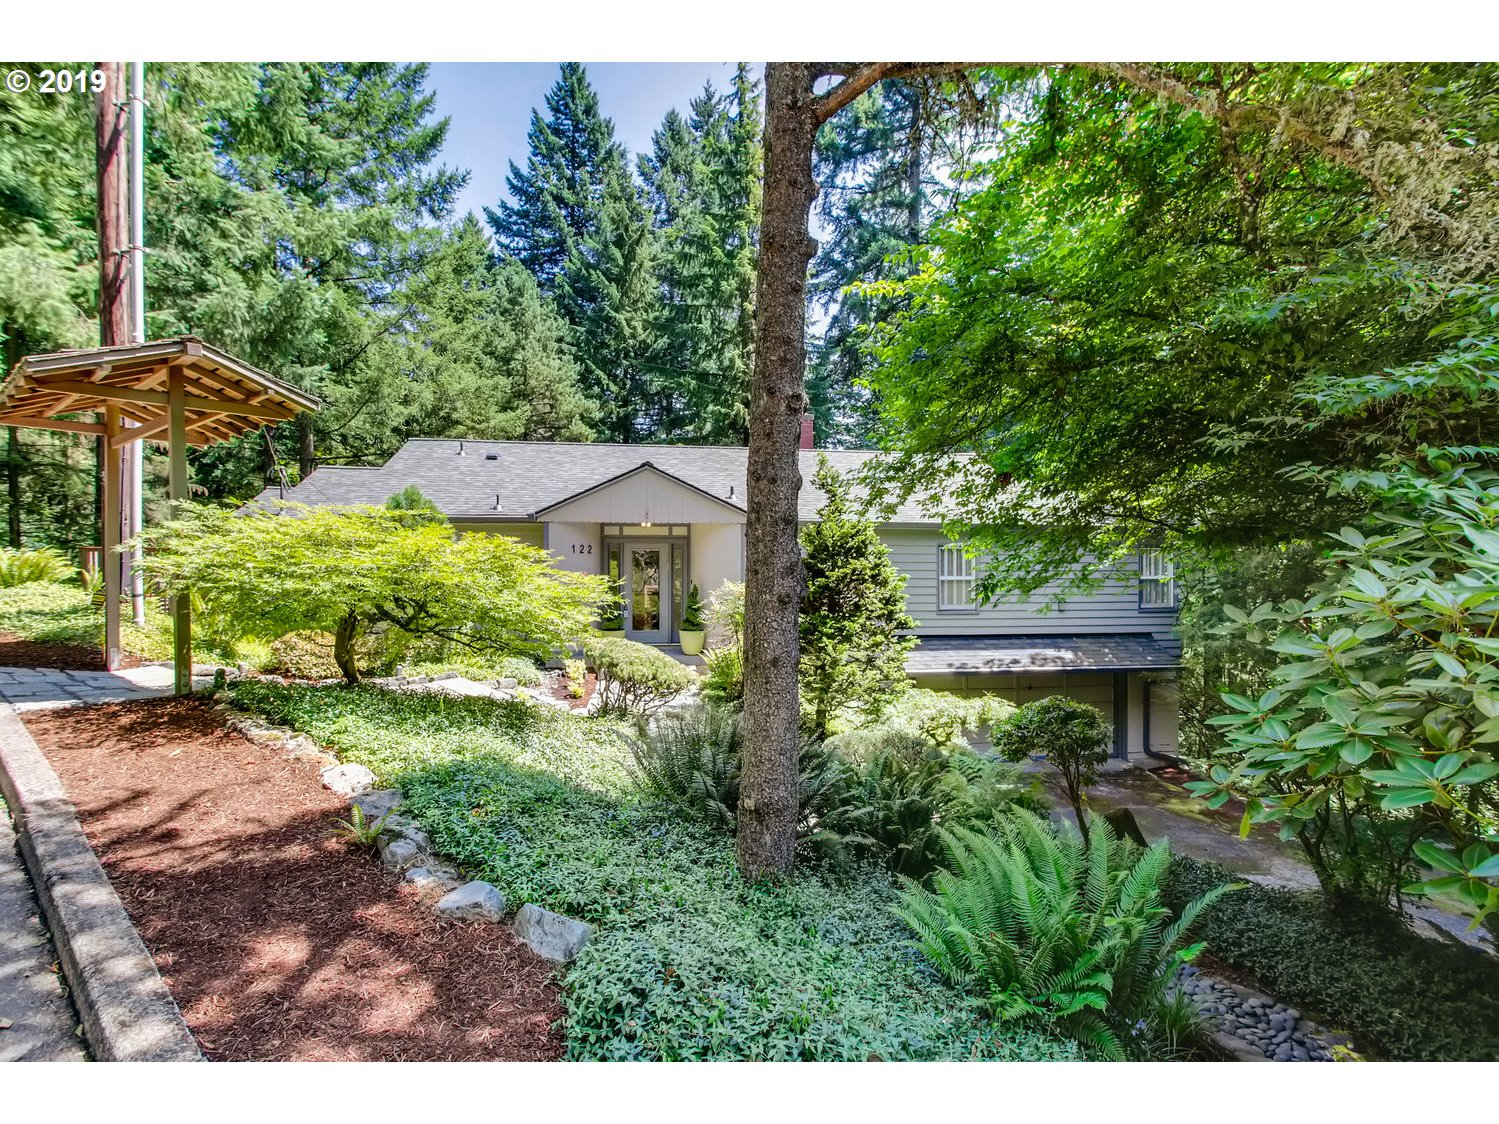 Over $50K invested since last on the market! Rare opportunity to be minutes from downtown yet in a peaceful forest. Move-in ready, master bed/bath on the main level, plus another bed & bath, formal dining or 4th bedroom, gourmet kitchen w/stainless top grade appliances, & huge living room & library/formal dining, big deck.  Another bedroom down w/ensuite bath, big family room w/fireplace, laundry plus tons of storage, 4th utility bath. Easy to add ADU. [Home Energy Score = 5. HES Report at https://rpt.greenbuildingregistry.com/hes/OR10118358]